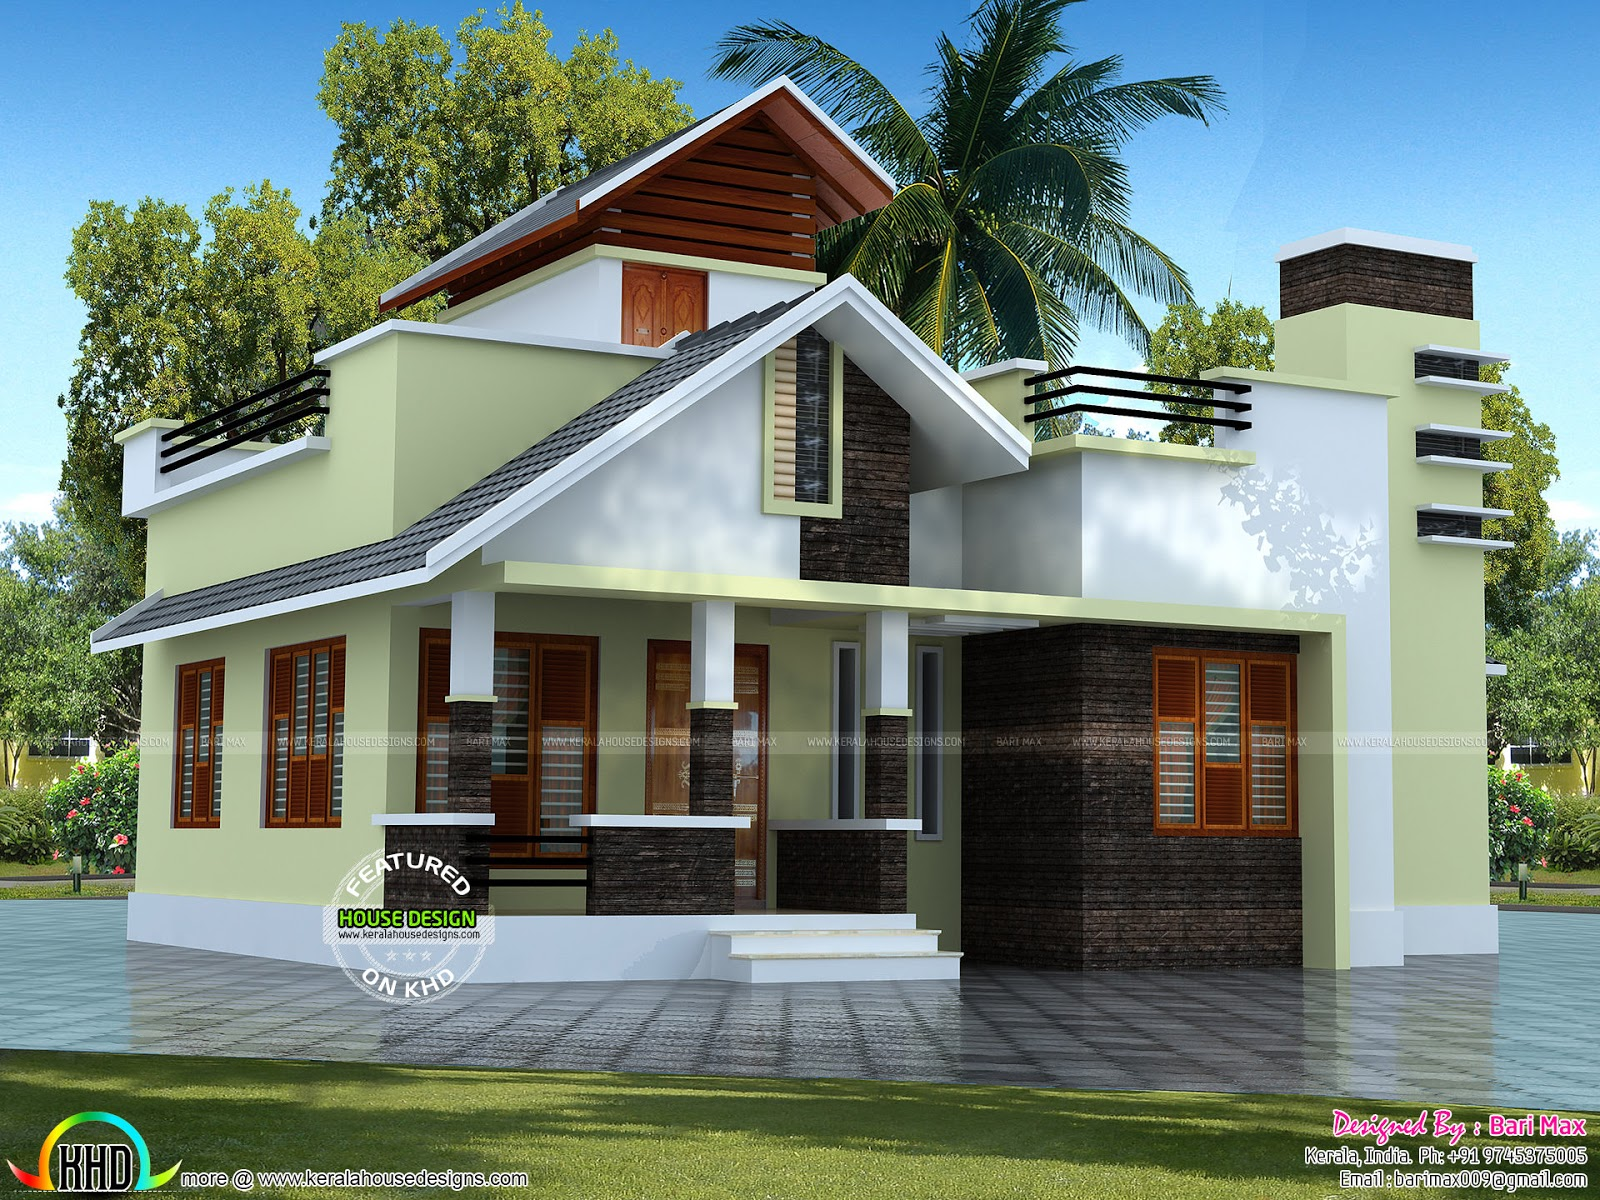 Low cost single floor home 1050 sq ft kerala home design for Low cost home design